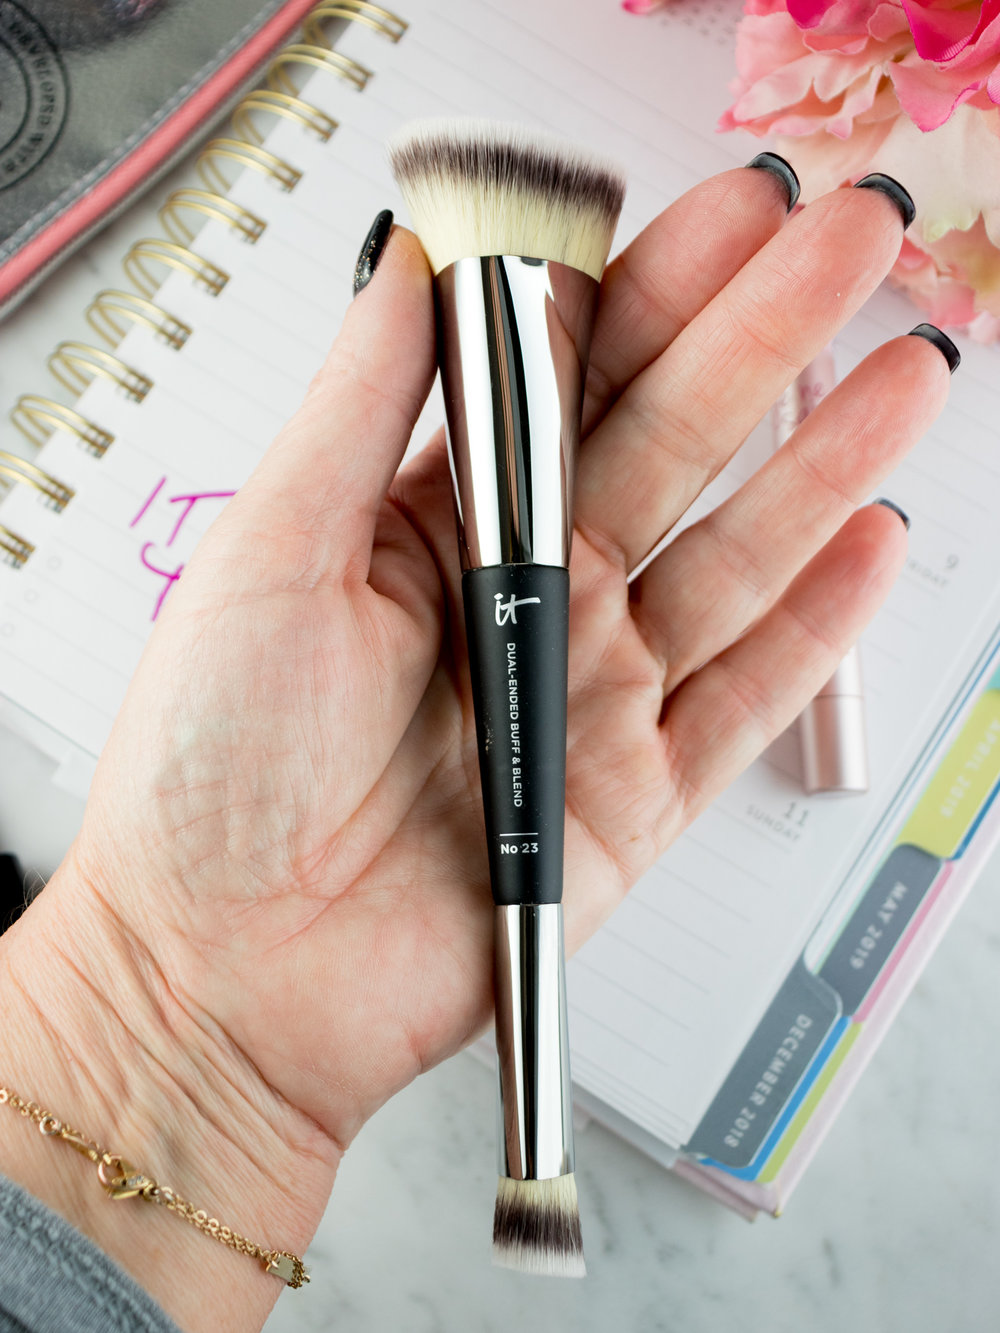 IT Cosmetics Holiday TSV Preview: Heavenly Luxe Brush No. 23